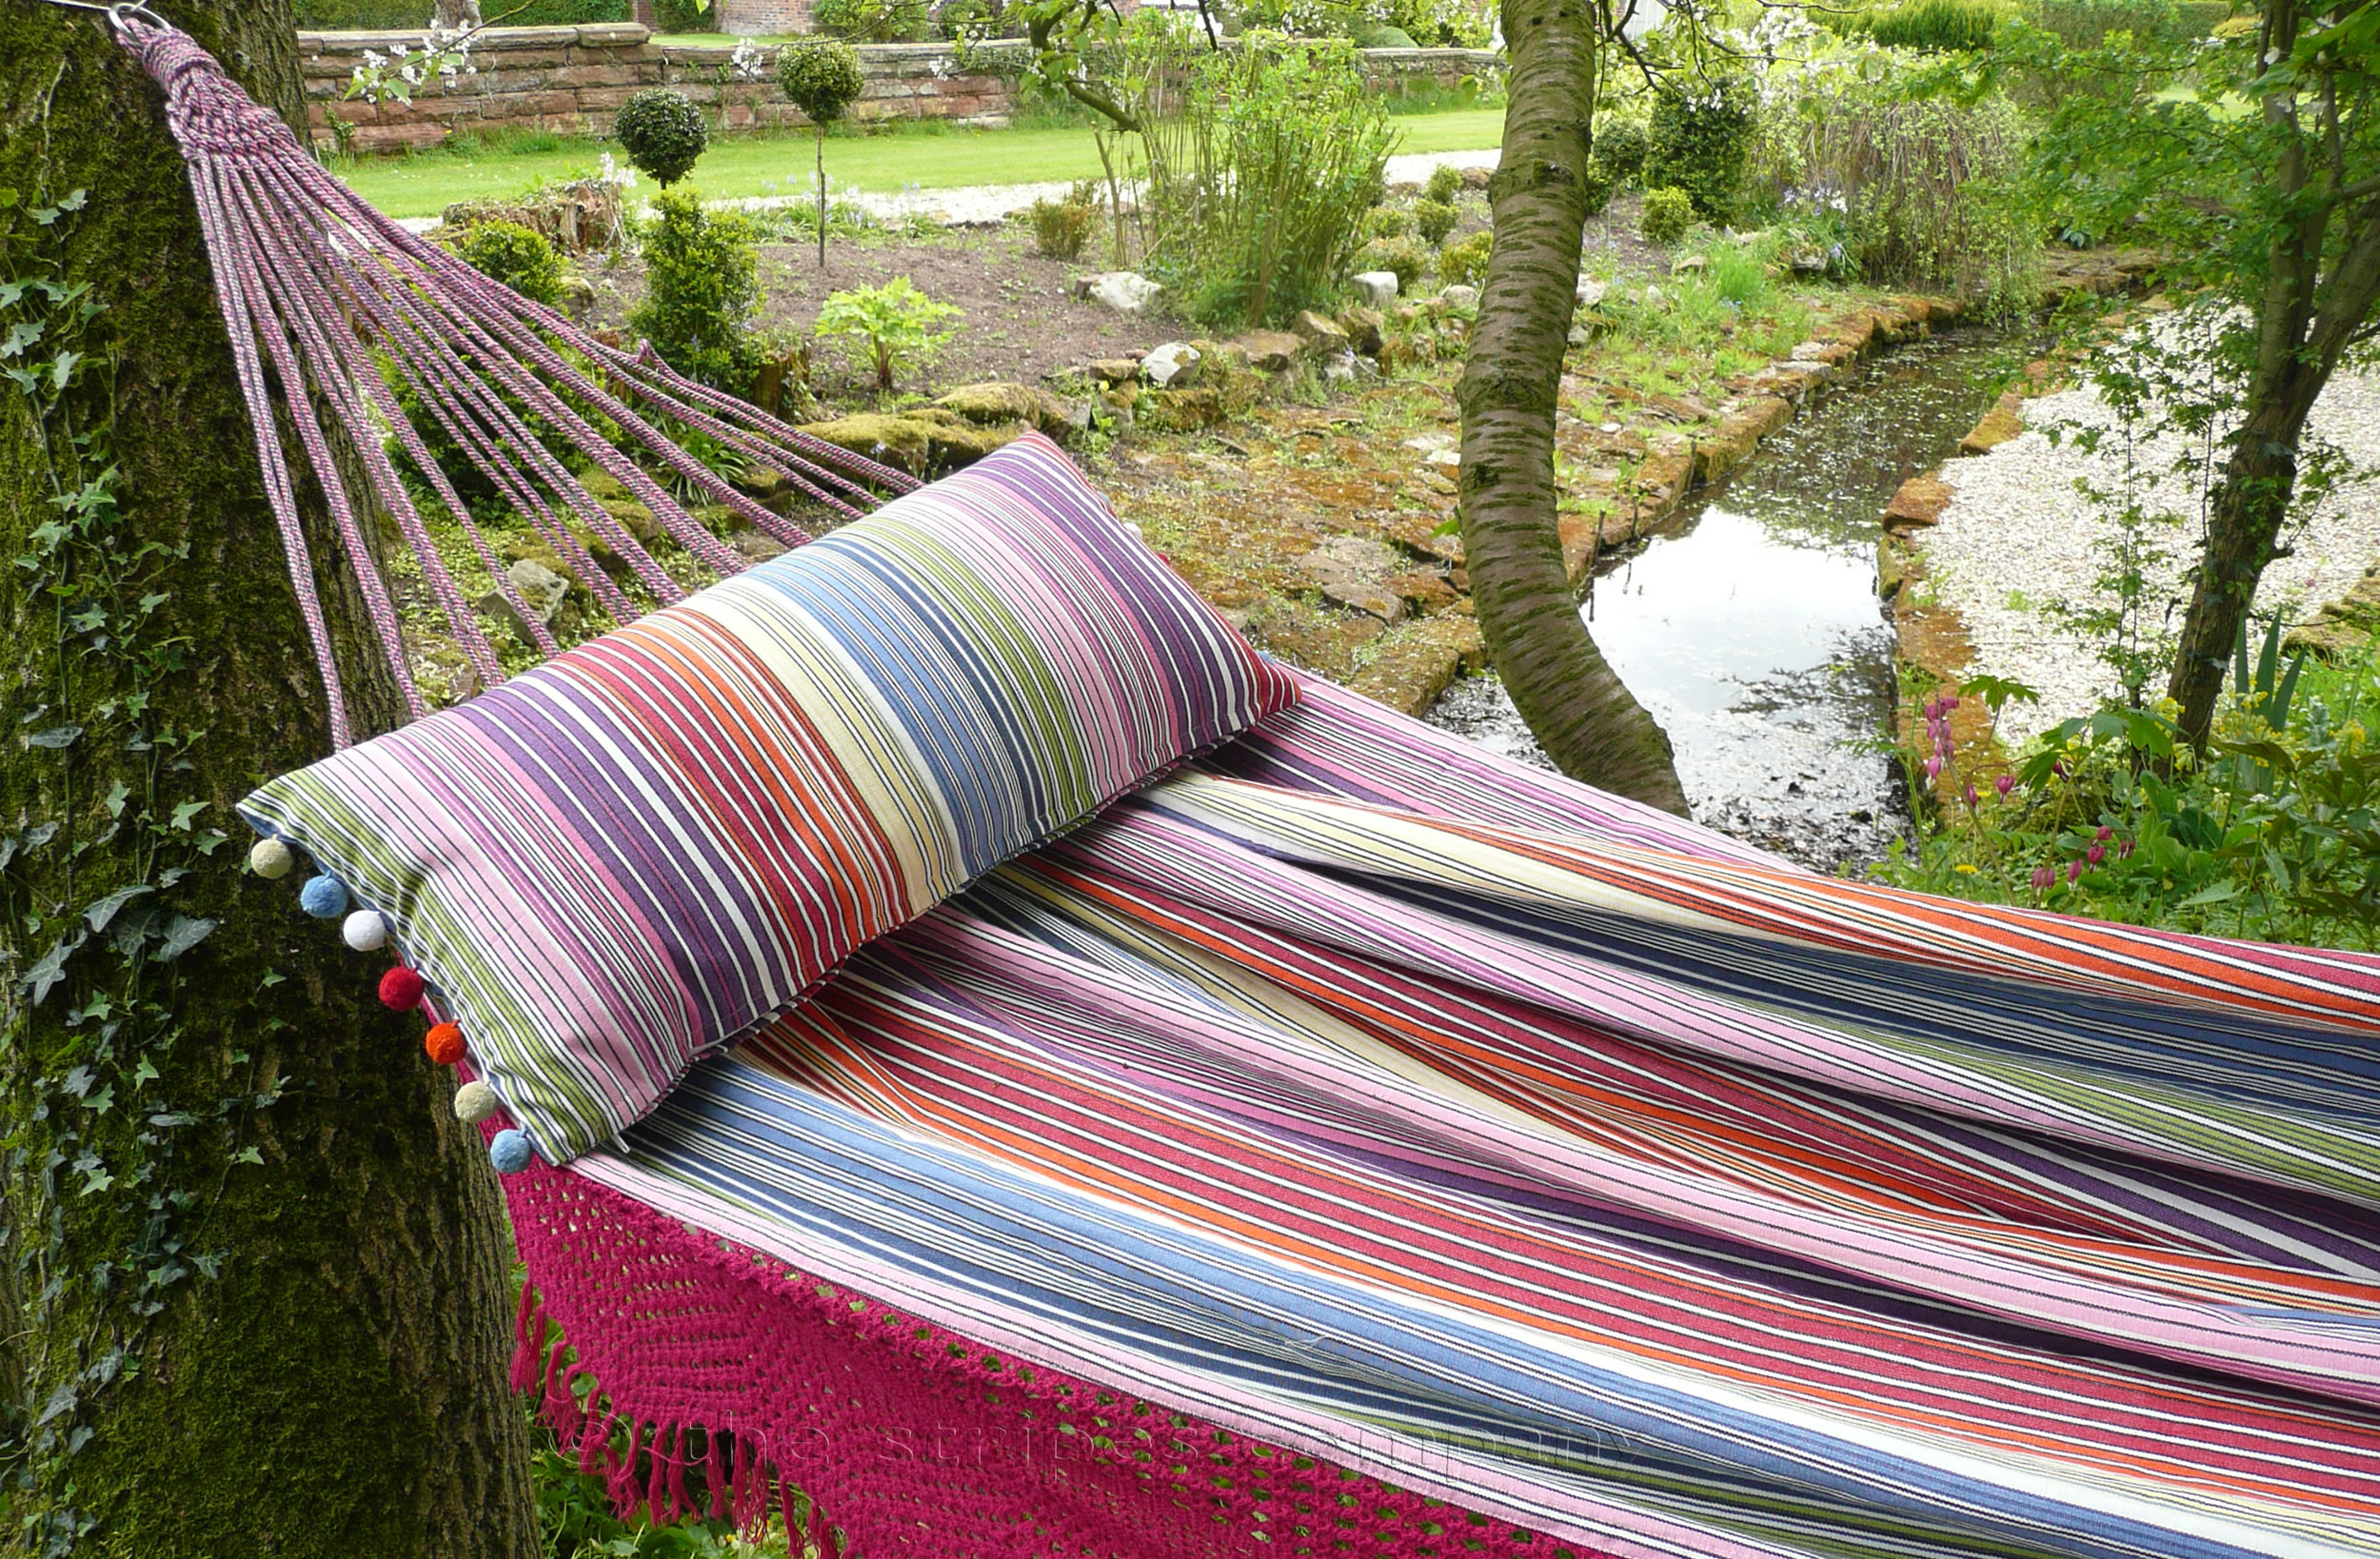 Pink Fringed Hammocks | Striped Hammocks with Fringe - Rhumba Stripes